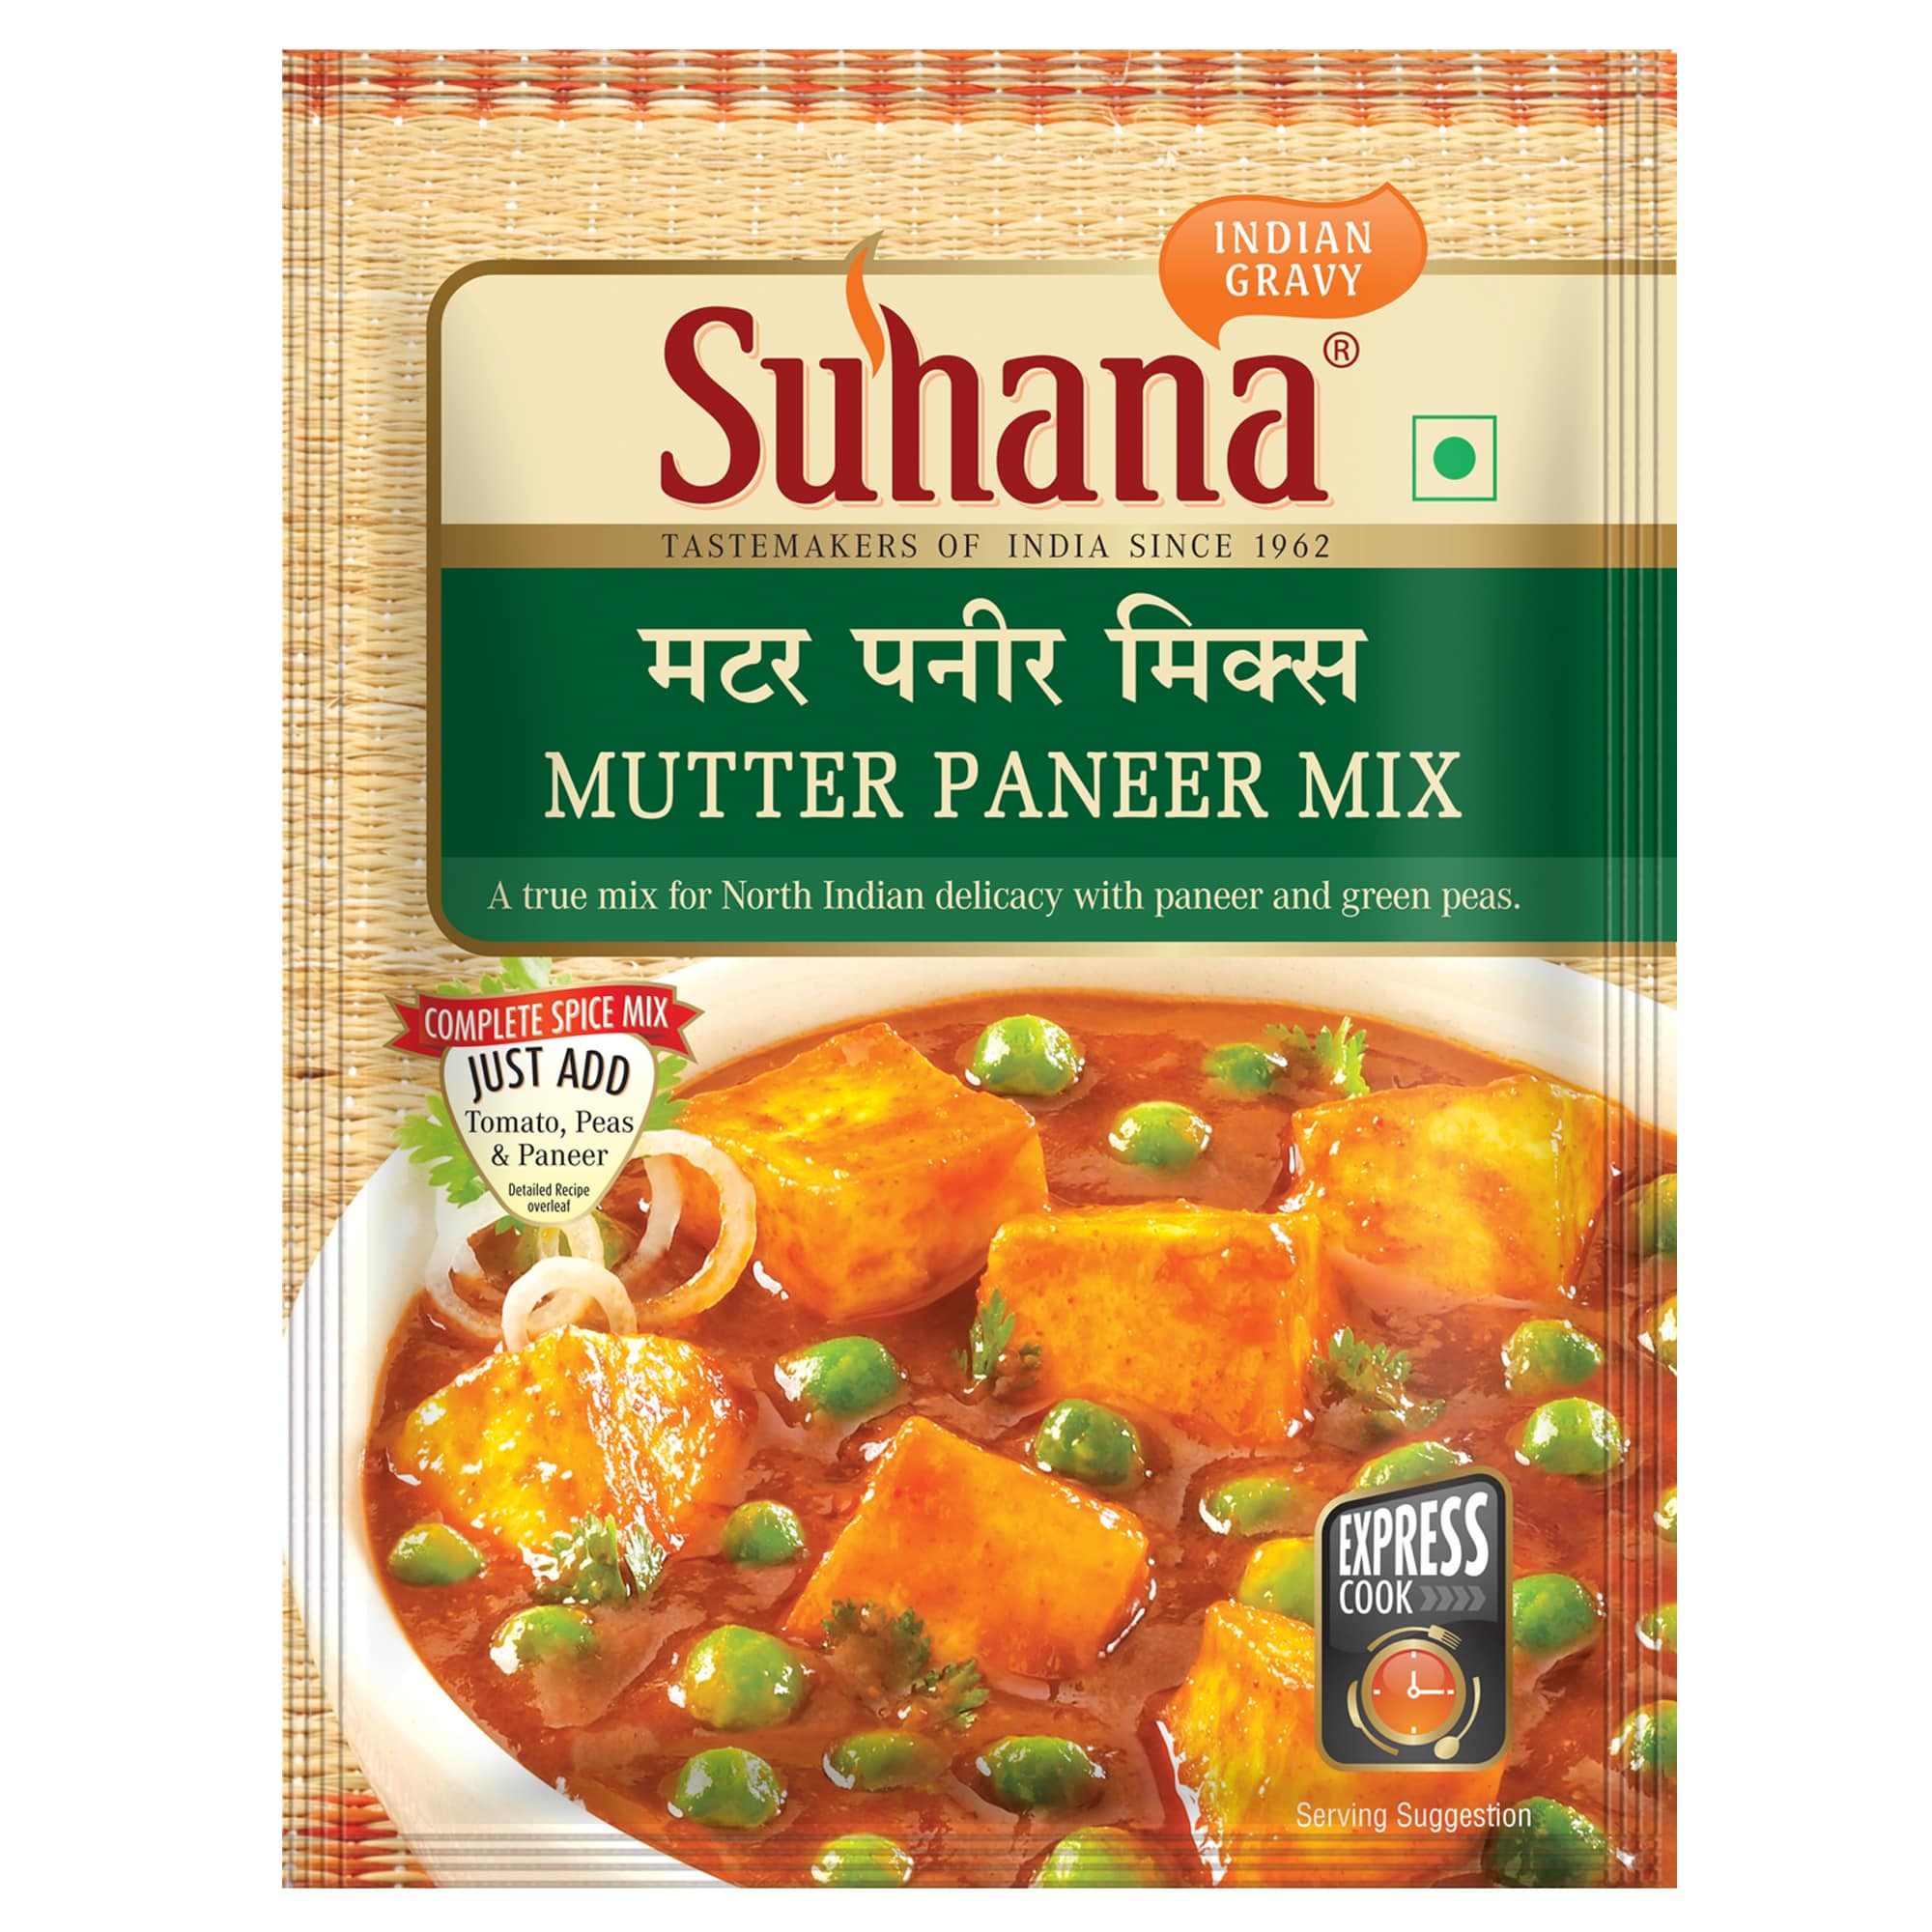 Suhana Mutter Paneer Spice Mix 50 g